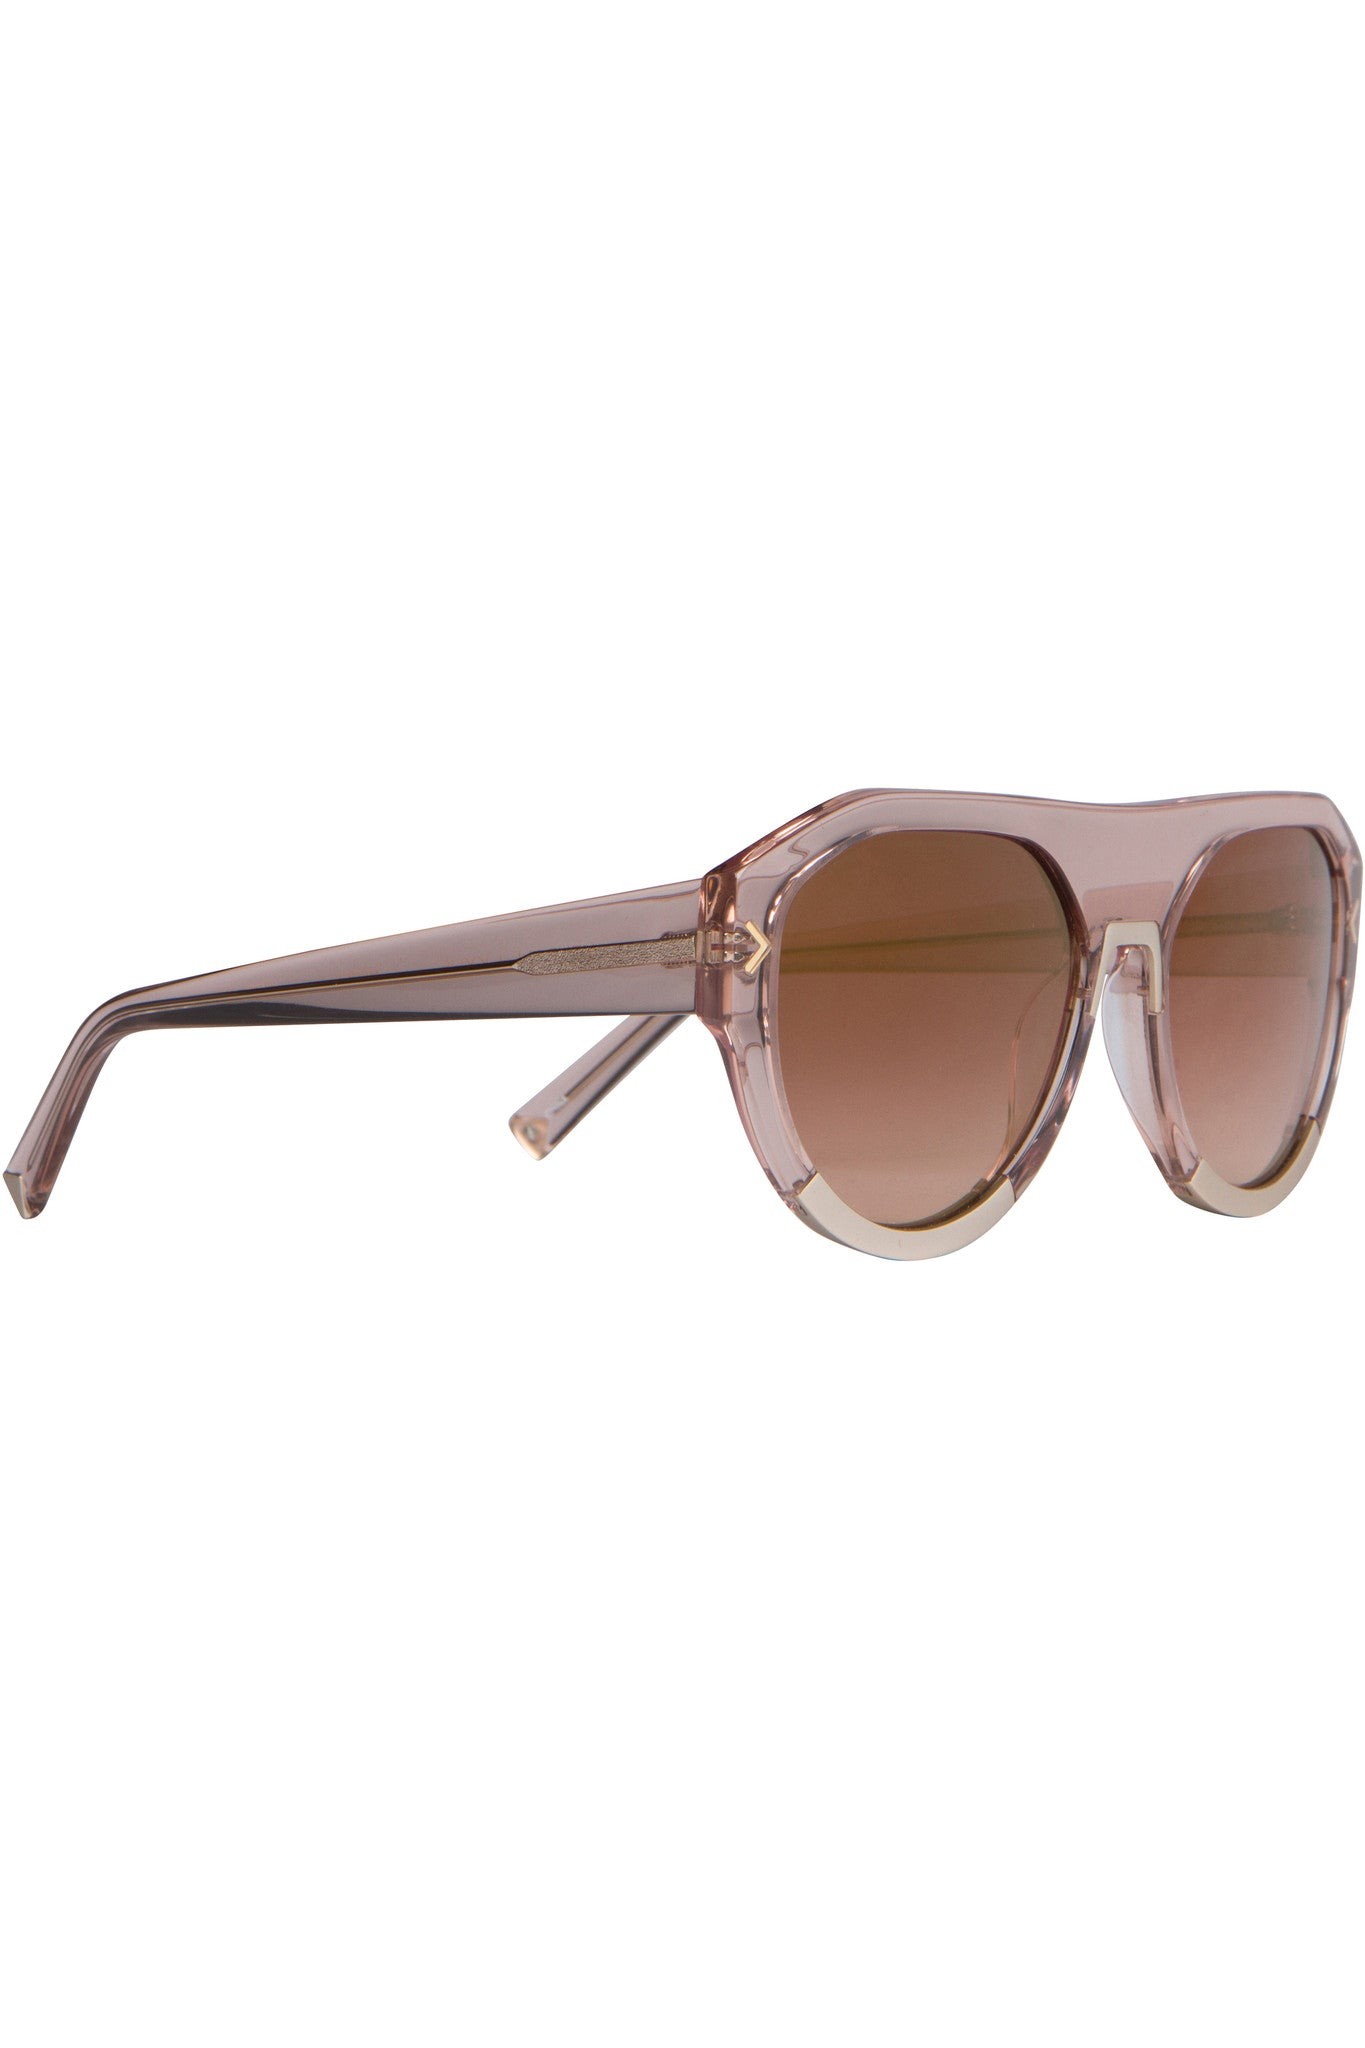 MERCY BLUSH CRYSTAL AND MATTE SATIN GOLD METAL SUNGLASSES EYEWEAR by KENDALL + KYLIE